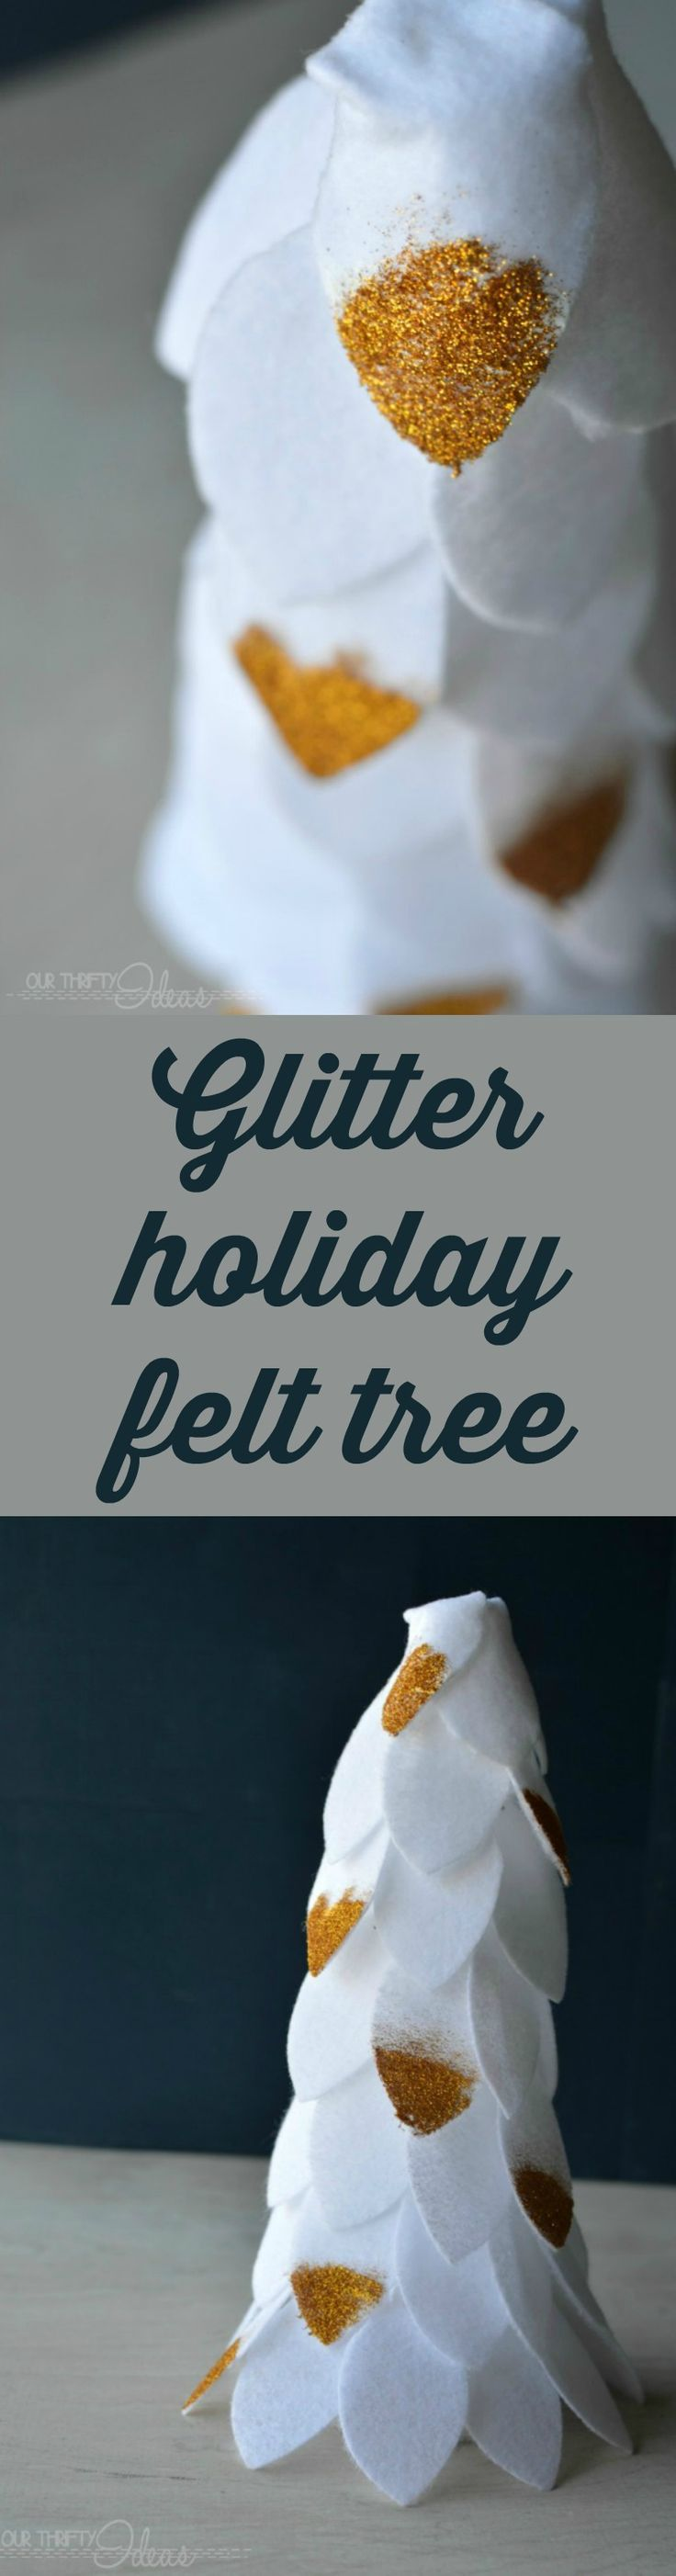 For a simple way to spice up your holiday decor, check out this felt DIY Christmas tree project using your favorite metallic glitter.